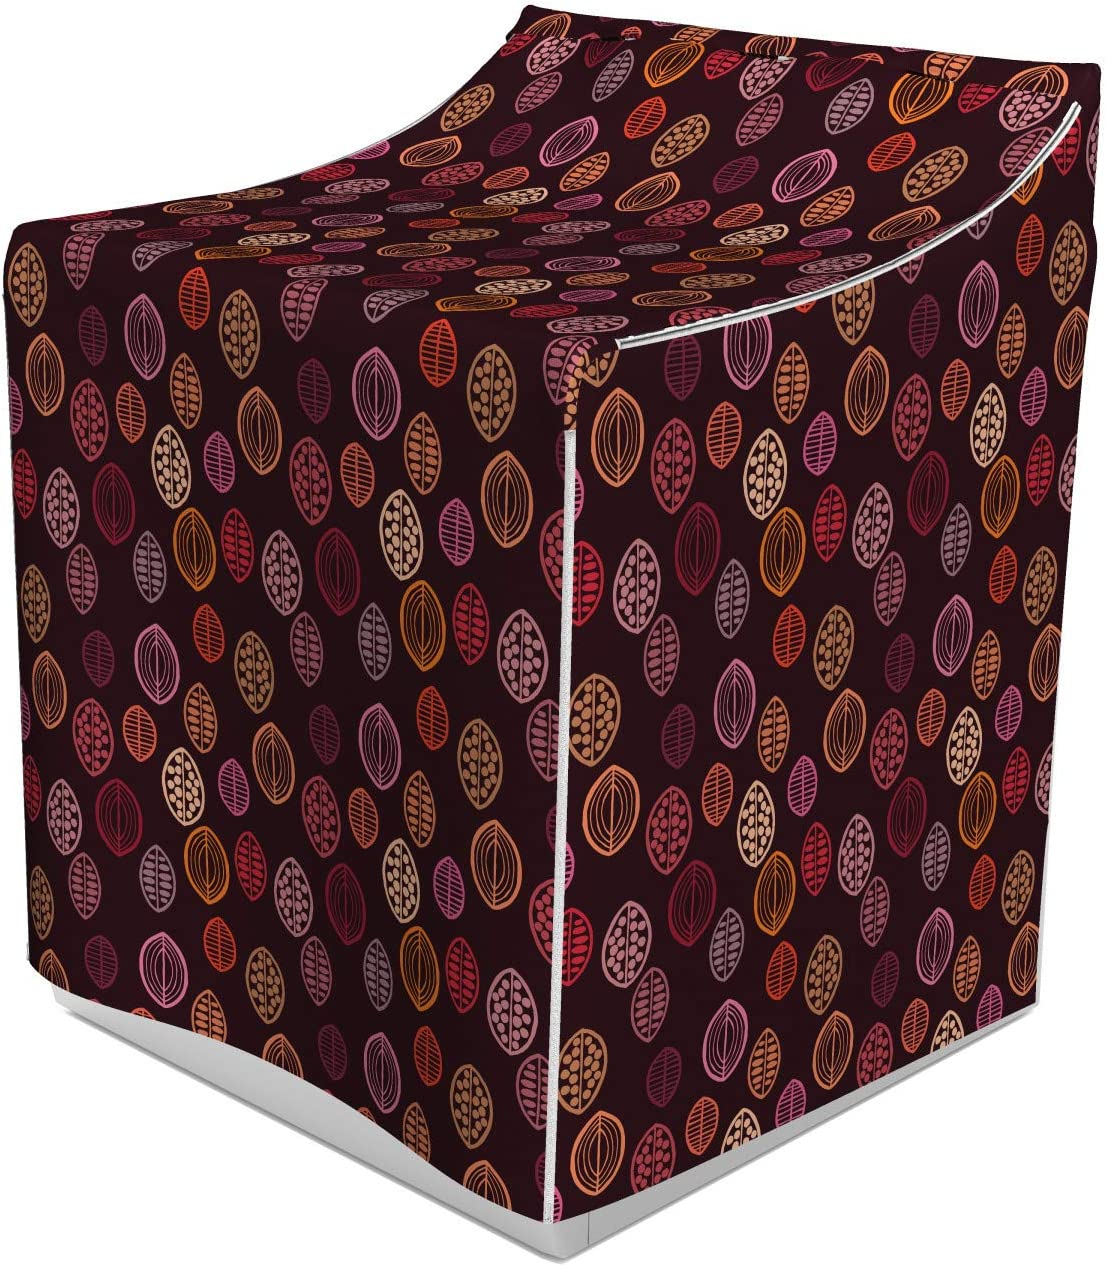 Amazon Com Lunarable Abstract Washer Cover Floral Pattern With Prehistoric Leaves In Different Colors Bohemian Design Suitable For Dryer And Washing Machine 29 X 28 X 40 Multicolor Home Improvement